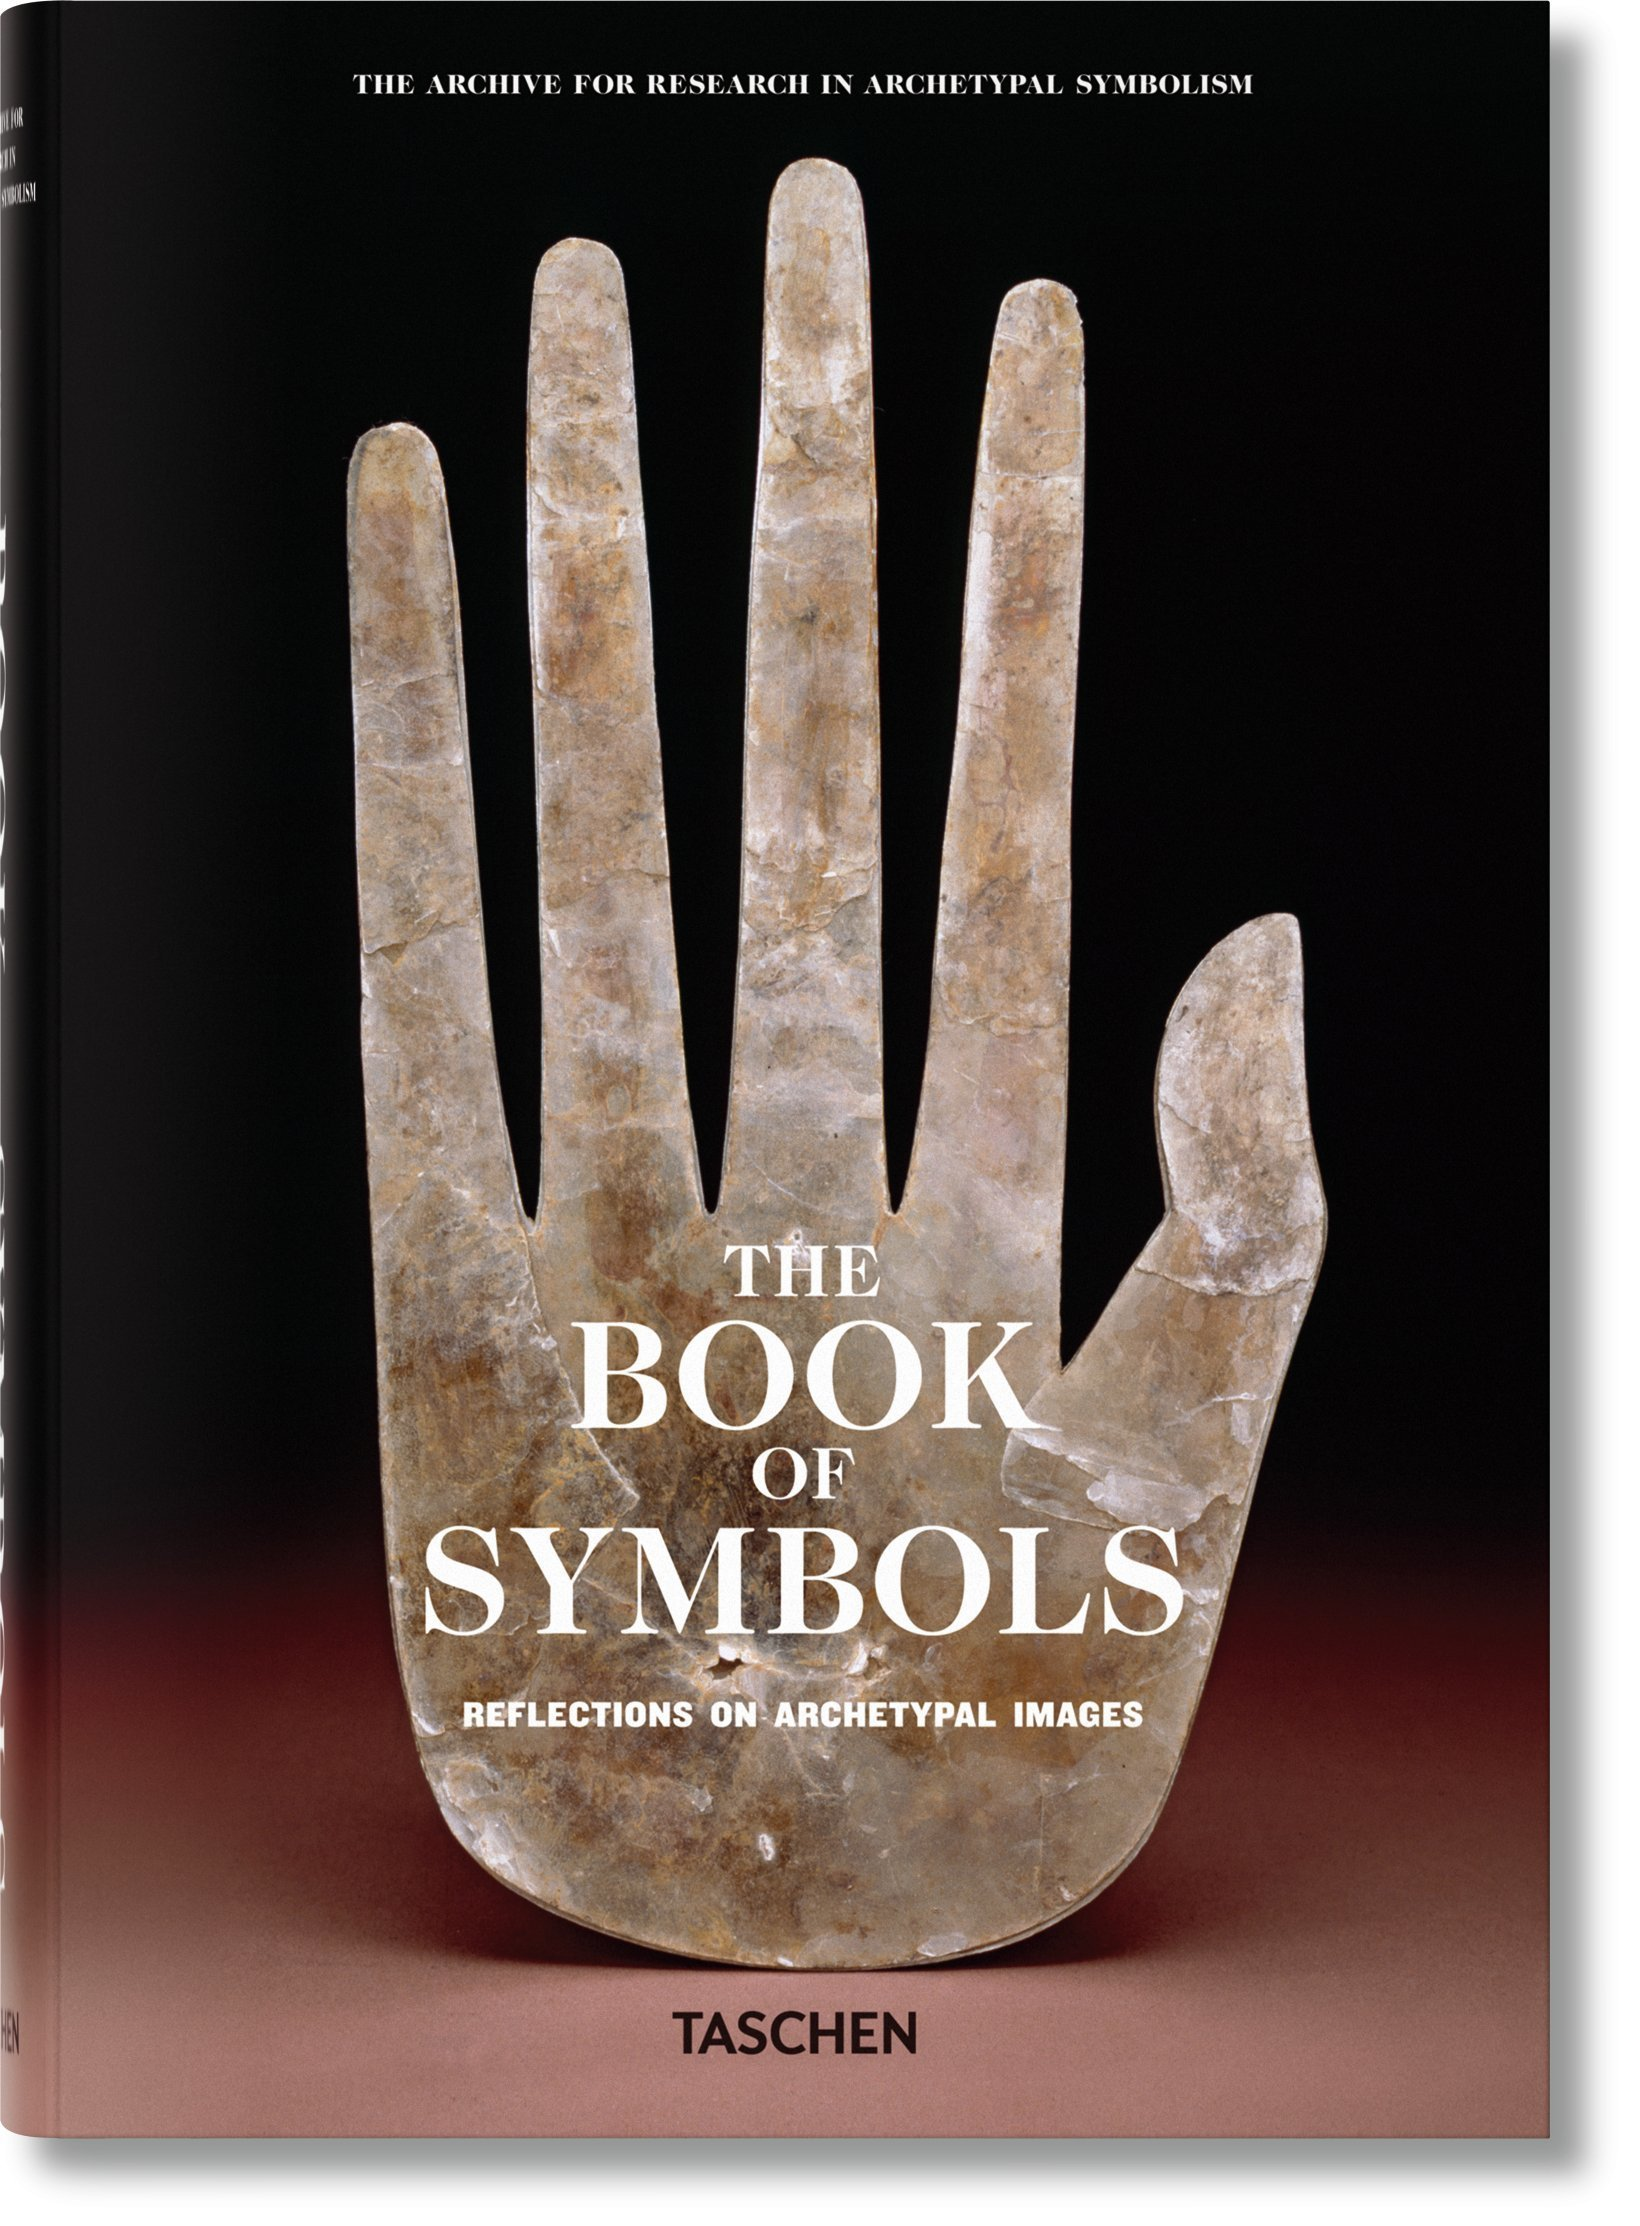 The Book Of Symbols  Reflections On Archetypal Images  The Archive For Research In Archetypal Symbolism